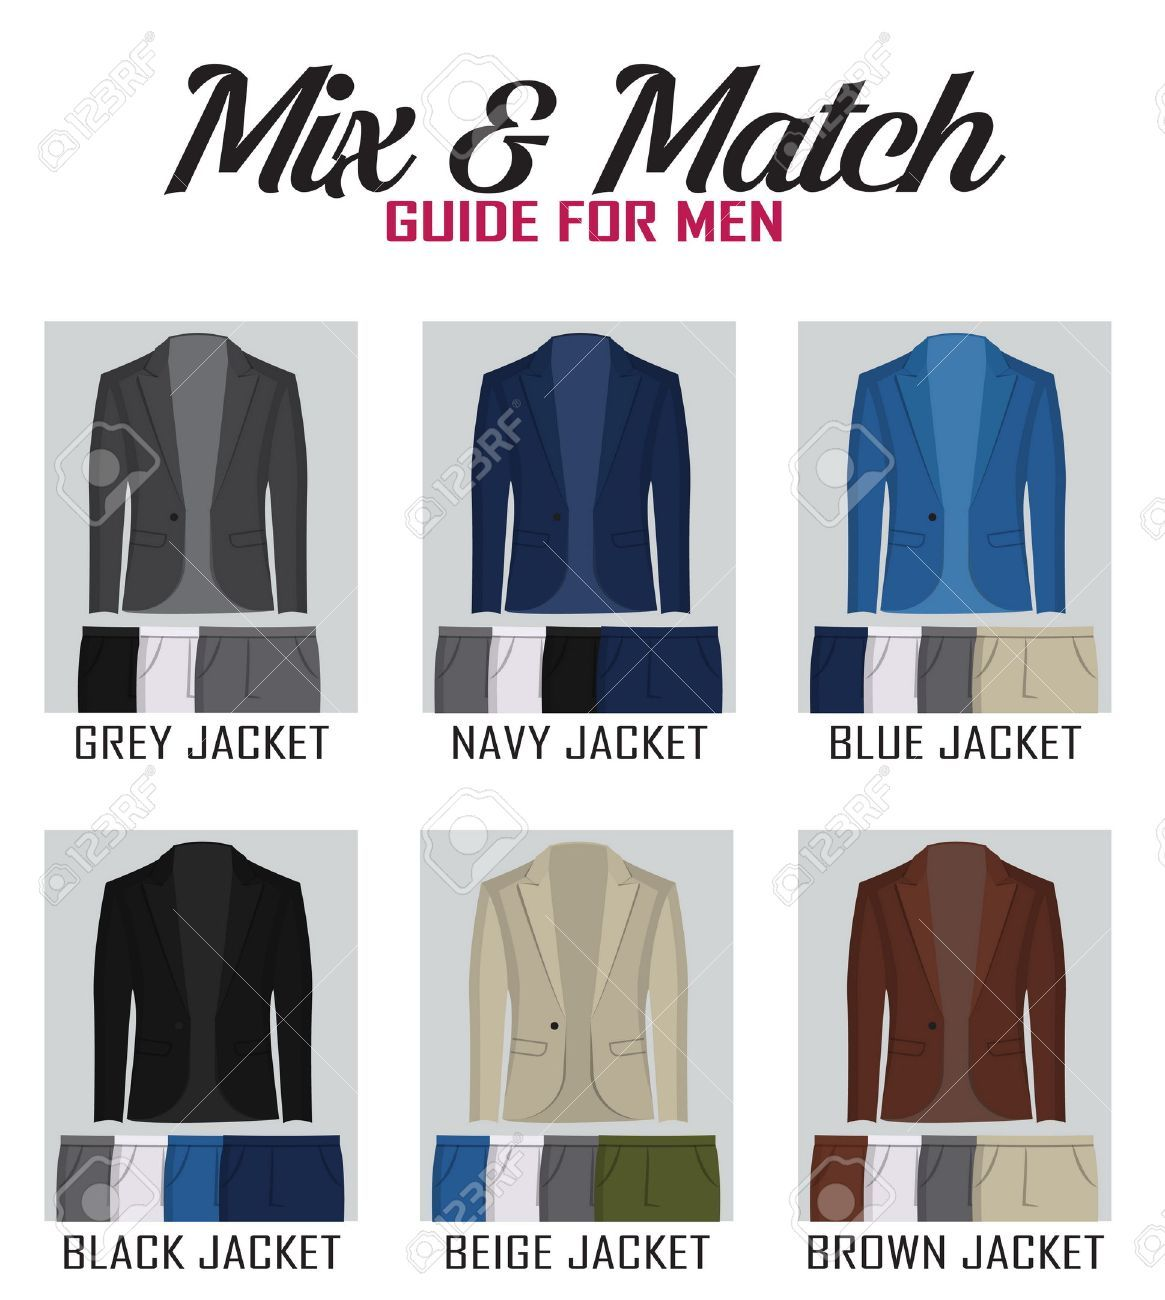 Grey what colour trousers jacket with Which color